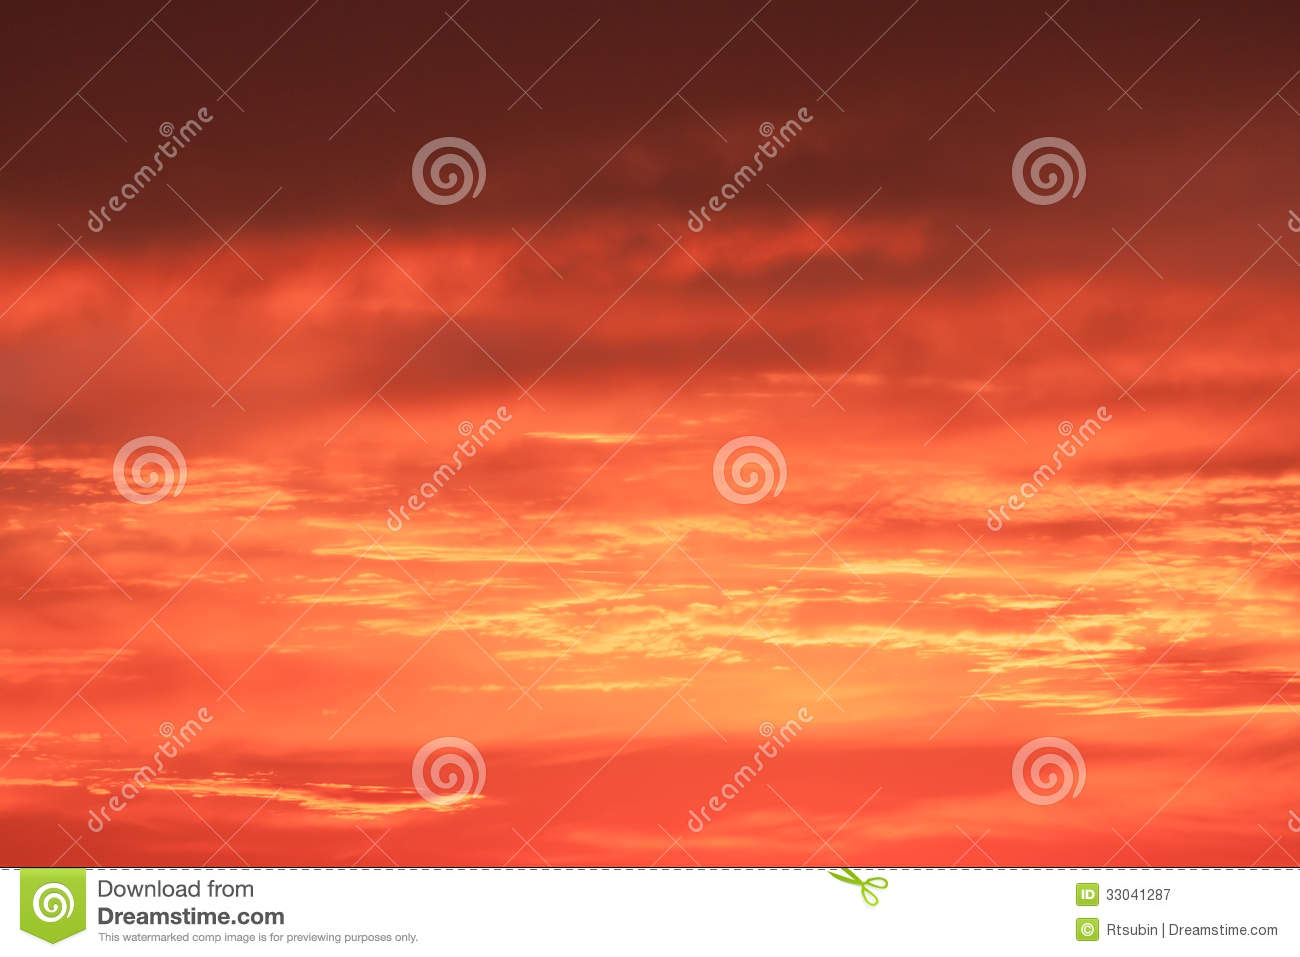 Bright vibrant orange and yellow colors sunset sky royalty for Bright vibrant colors